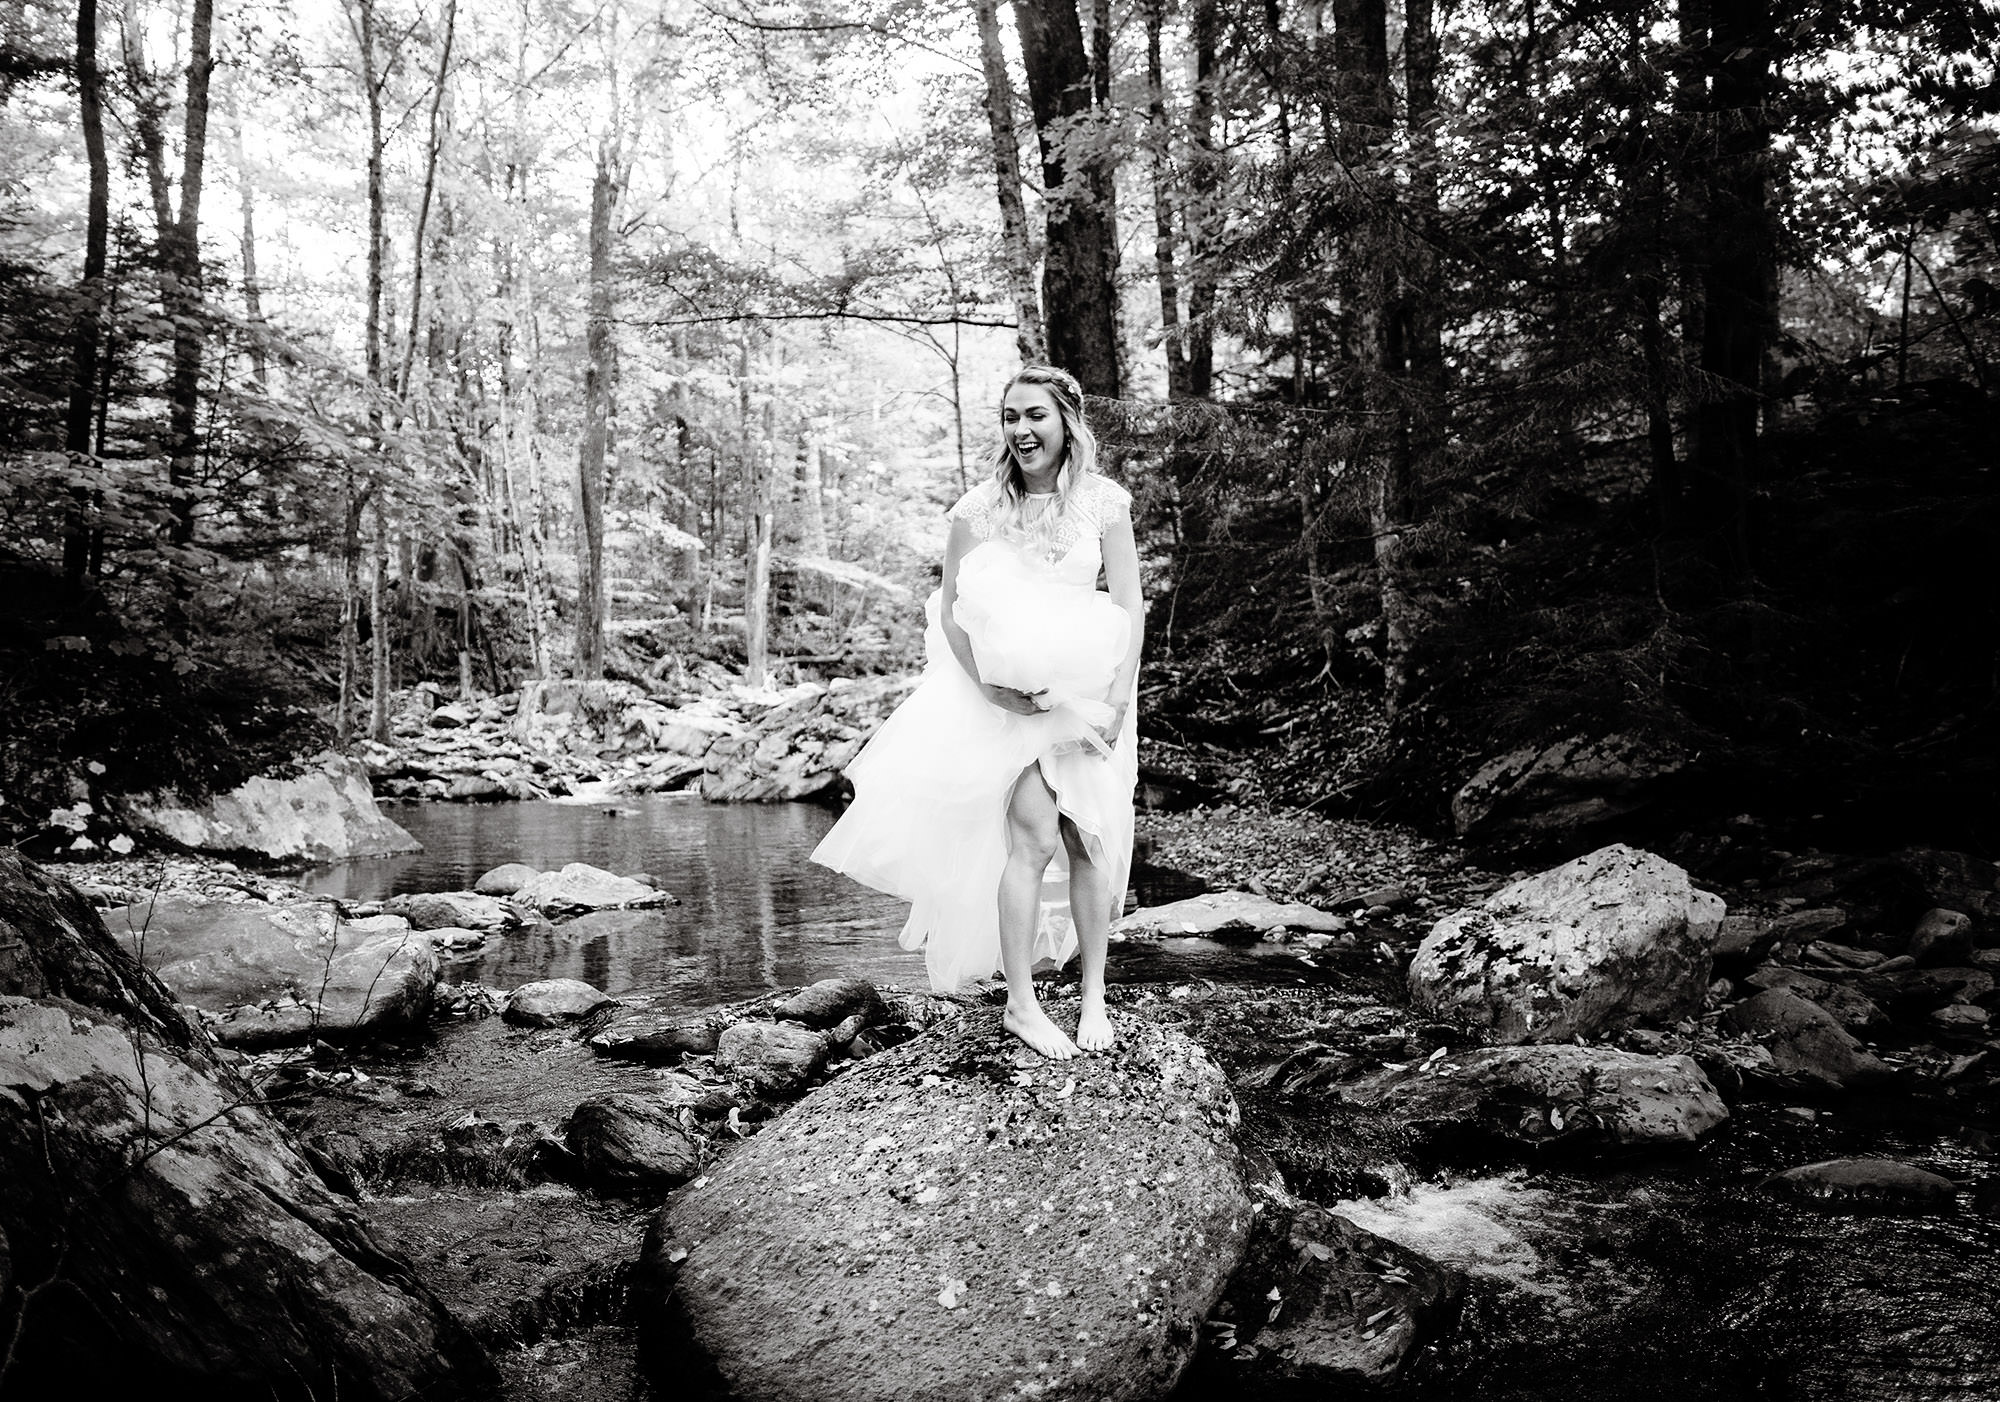 The bride smiles while standing on a rock in Mill Brook prior to her wedding at Mad River Barn in Waitsfield, VT.